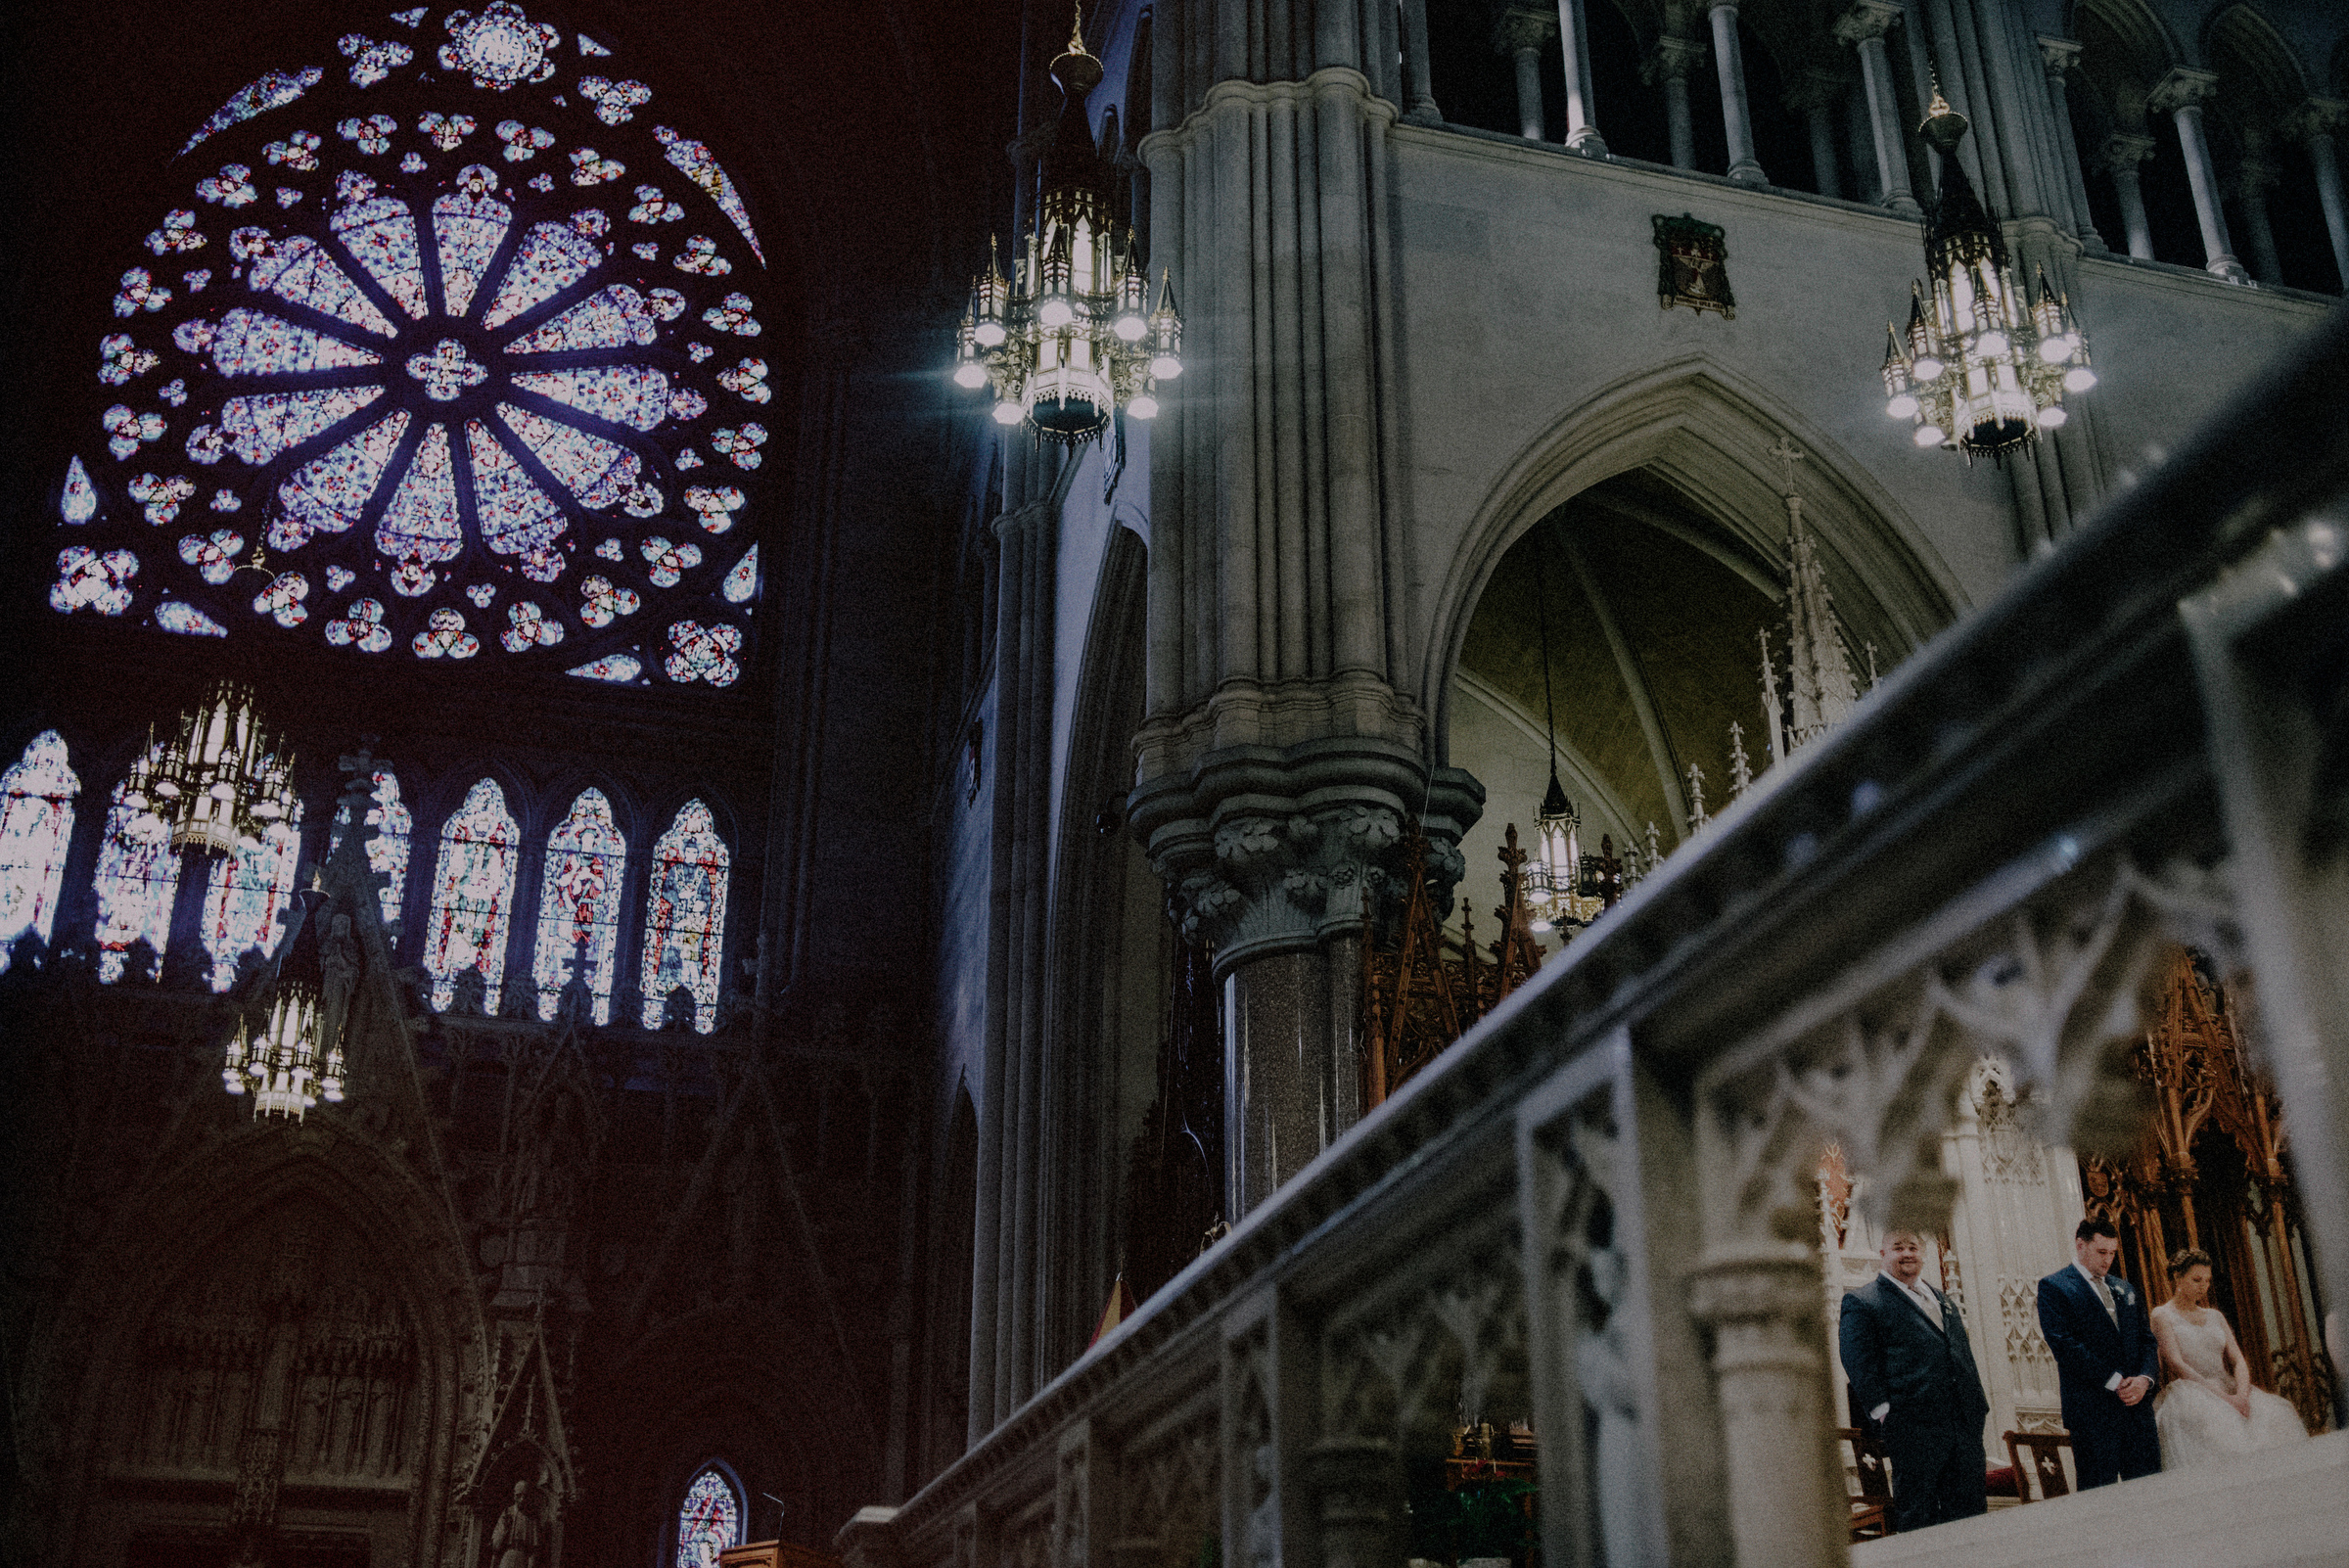 Couple in cathedral against rose window - photo by Carolina Rivera Photography